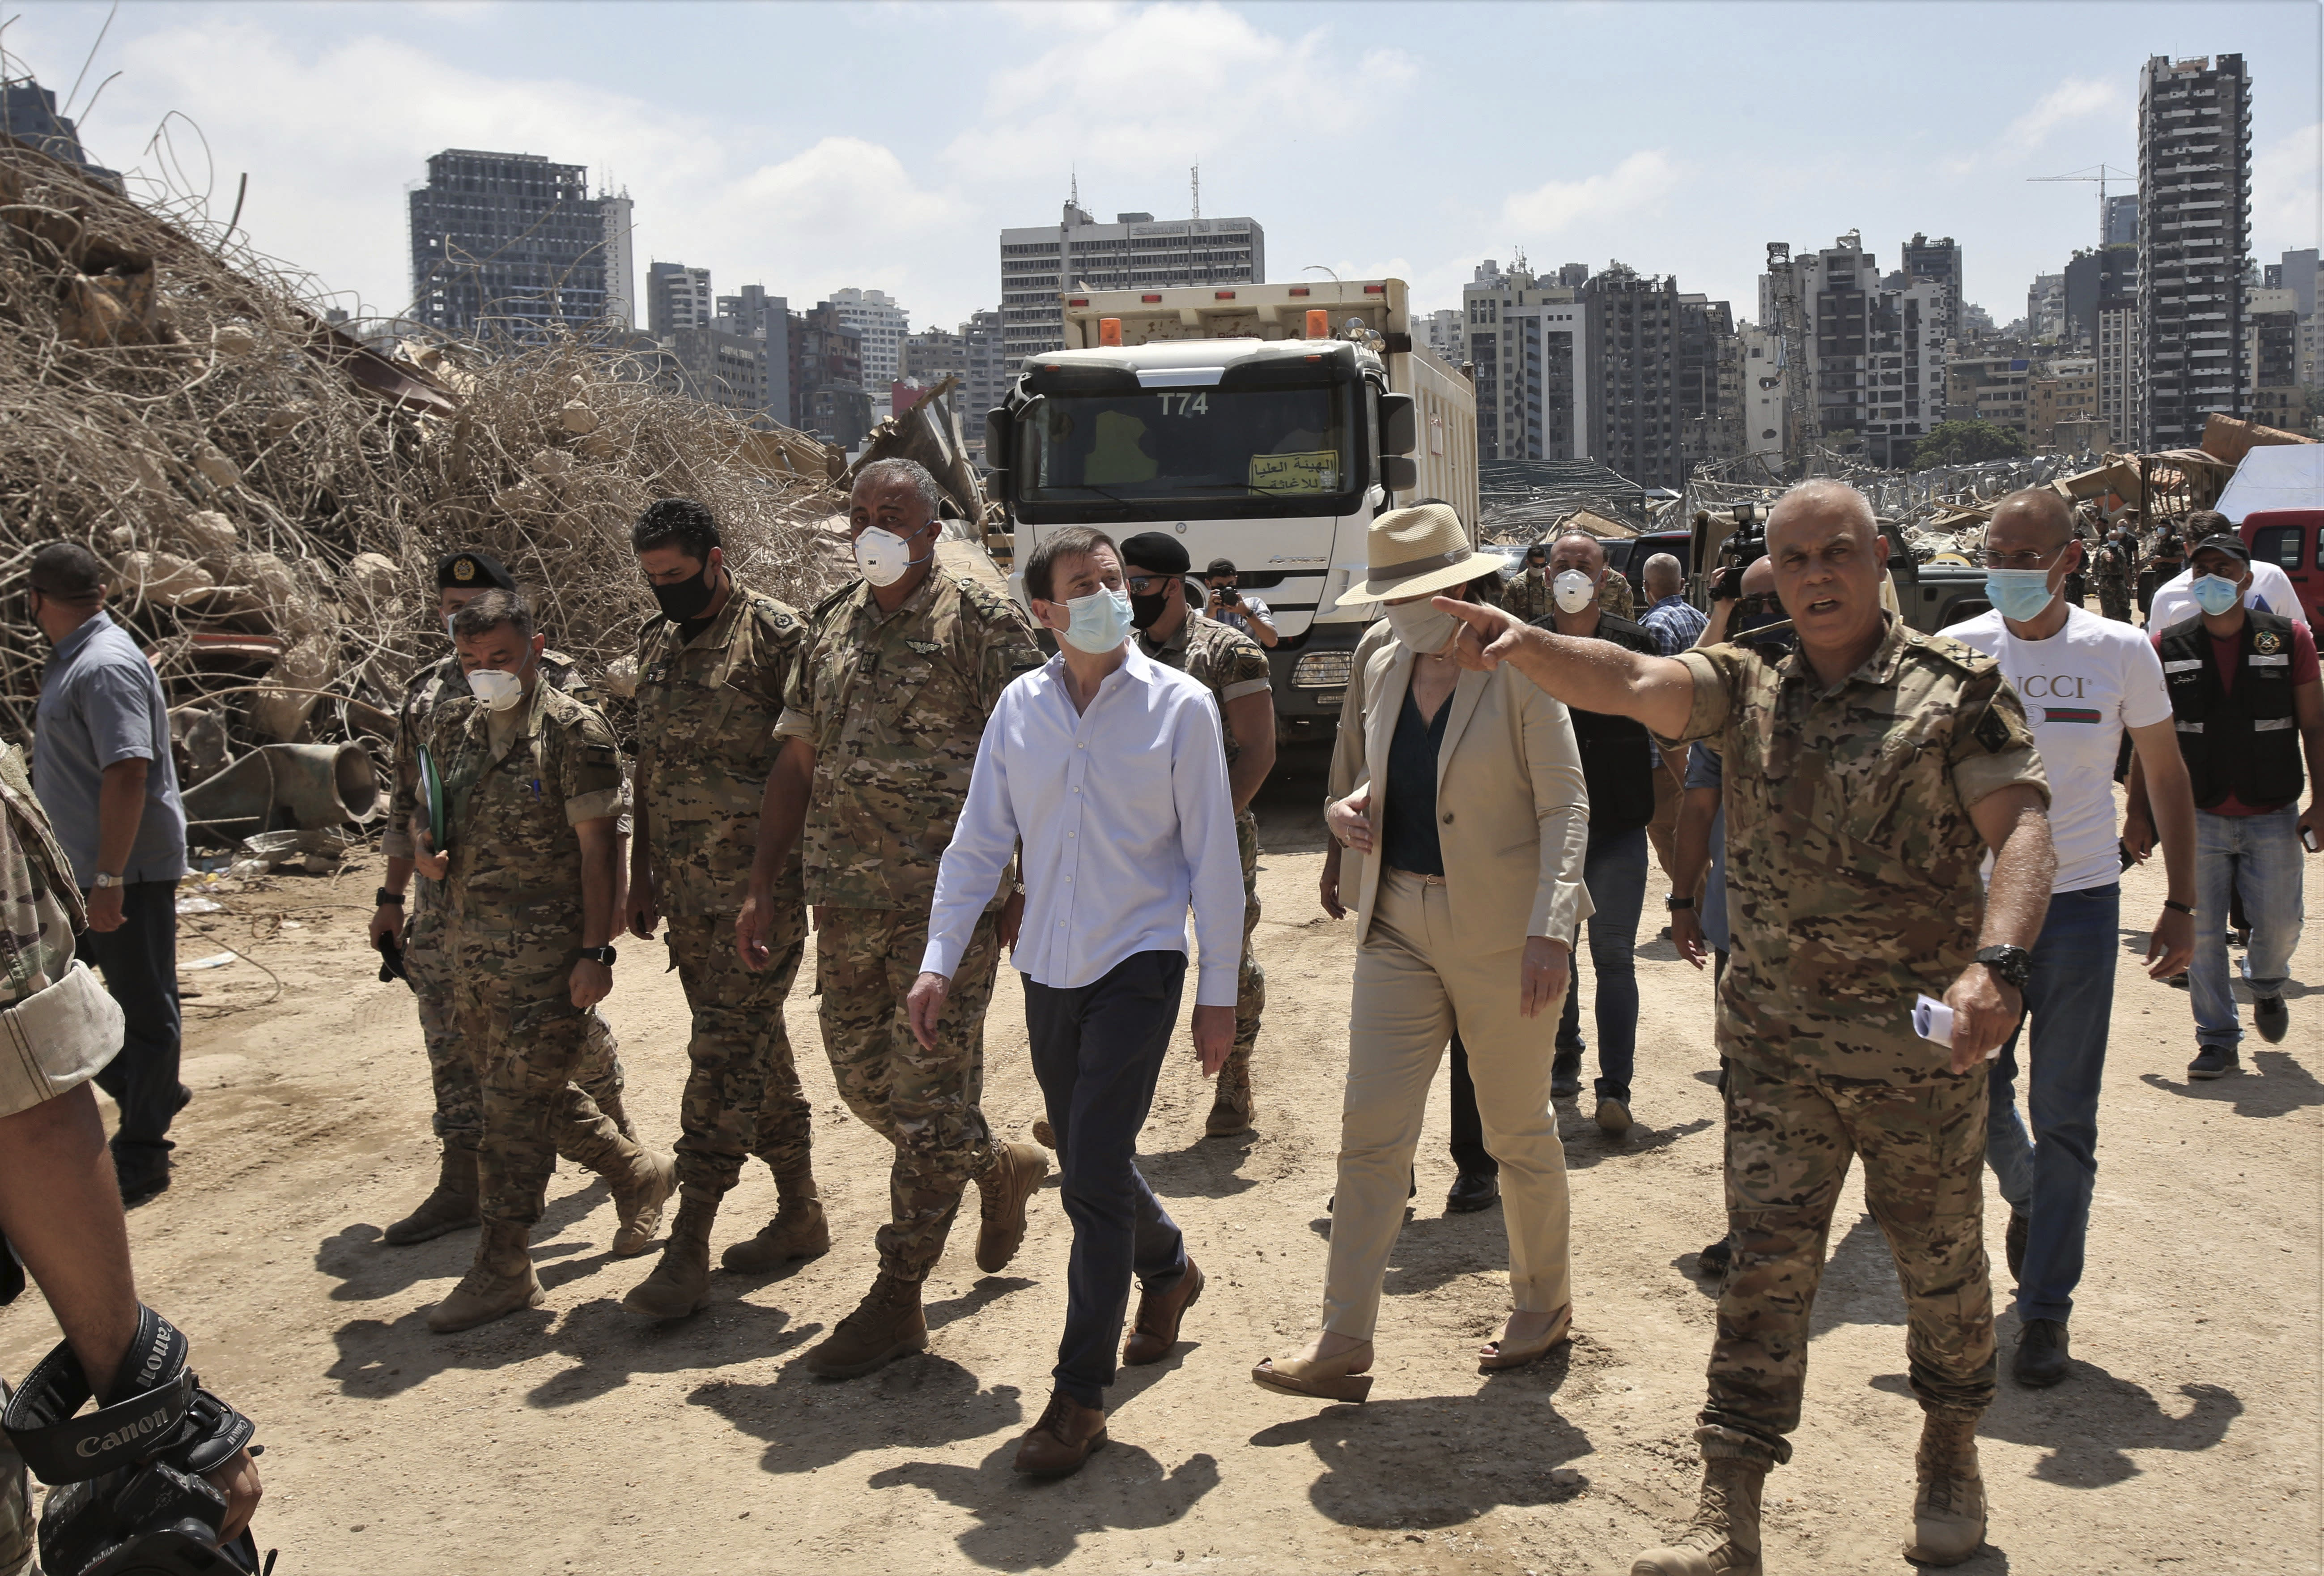 U.S. Undersecretary of State for Political Affairs David Hale, third from right, and U.S. Ambassador to Lebanon Dorothy Shea, second from right, visit the site of the Aug. 4 explosion in Beirut, Lebanon, Saturday, Aug. 15, 2020. (Nabil Monzer/Pool Photo via AP)